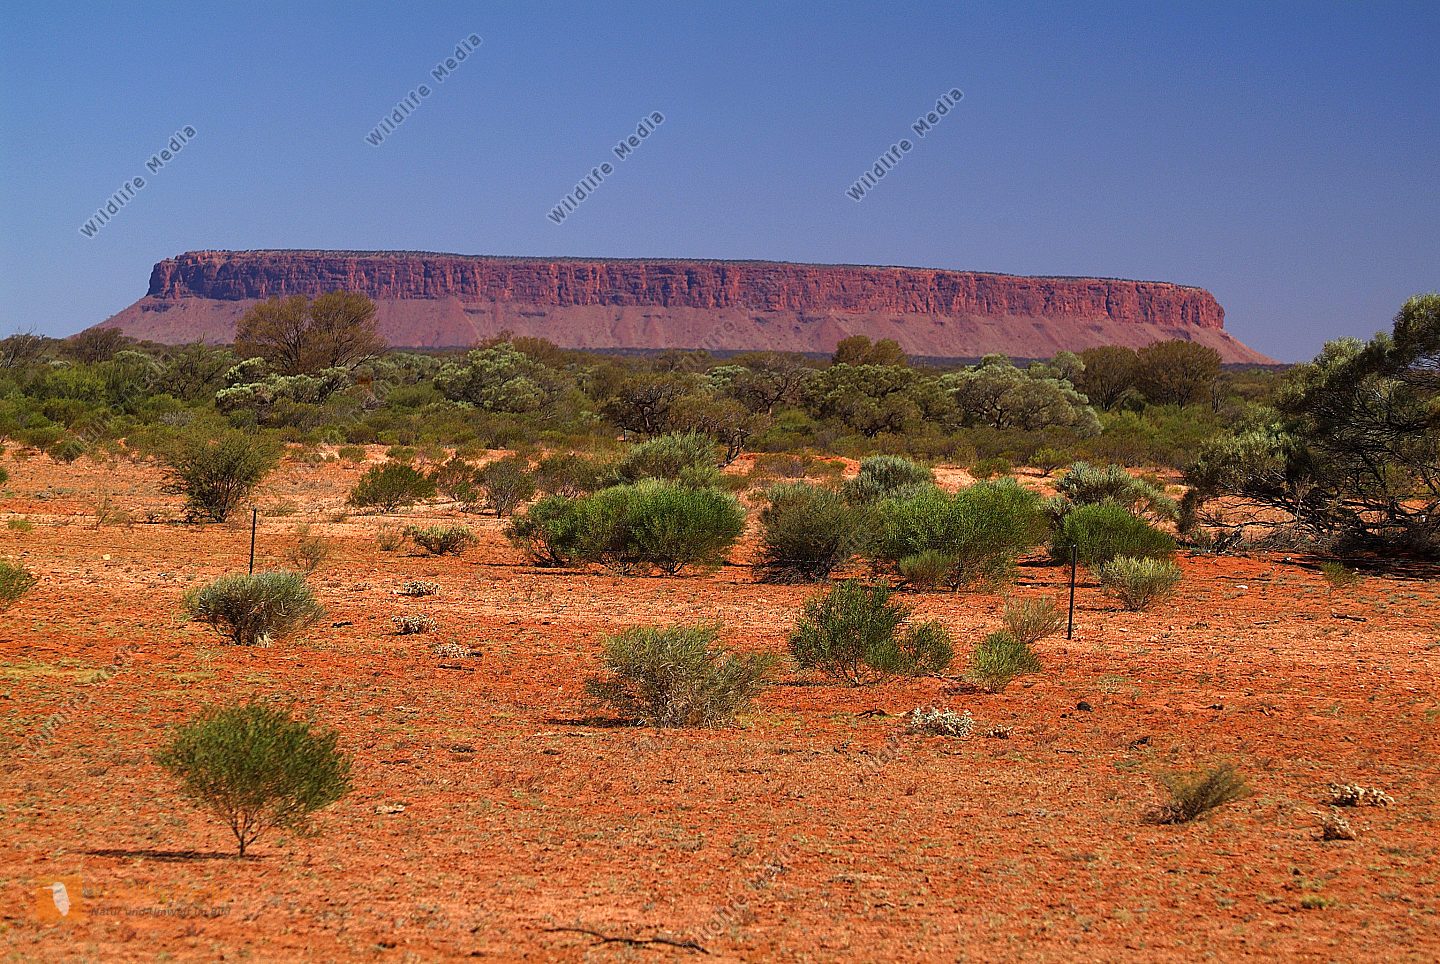 Australia, Mount Connor